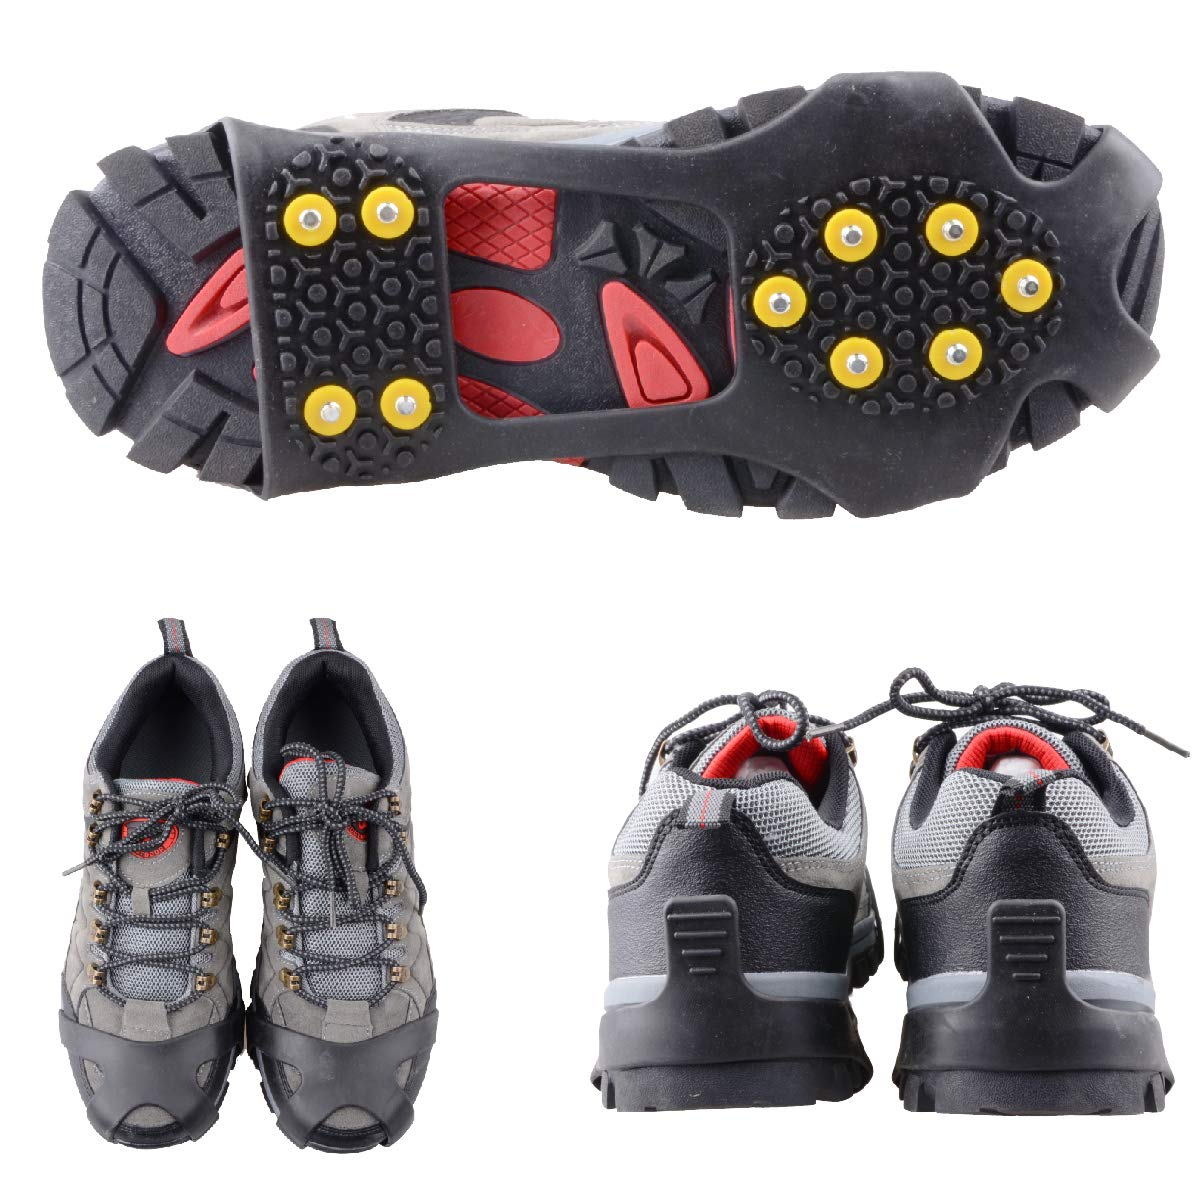 TRIWONDER Ice Grips 10 Teeth Anti-Slip Shoe/Boot Ice Traction Slip-on Snow Ice Spikes Crampons Cleats Stretch Footwear Traction